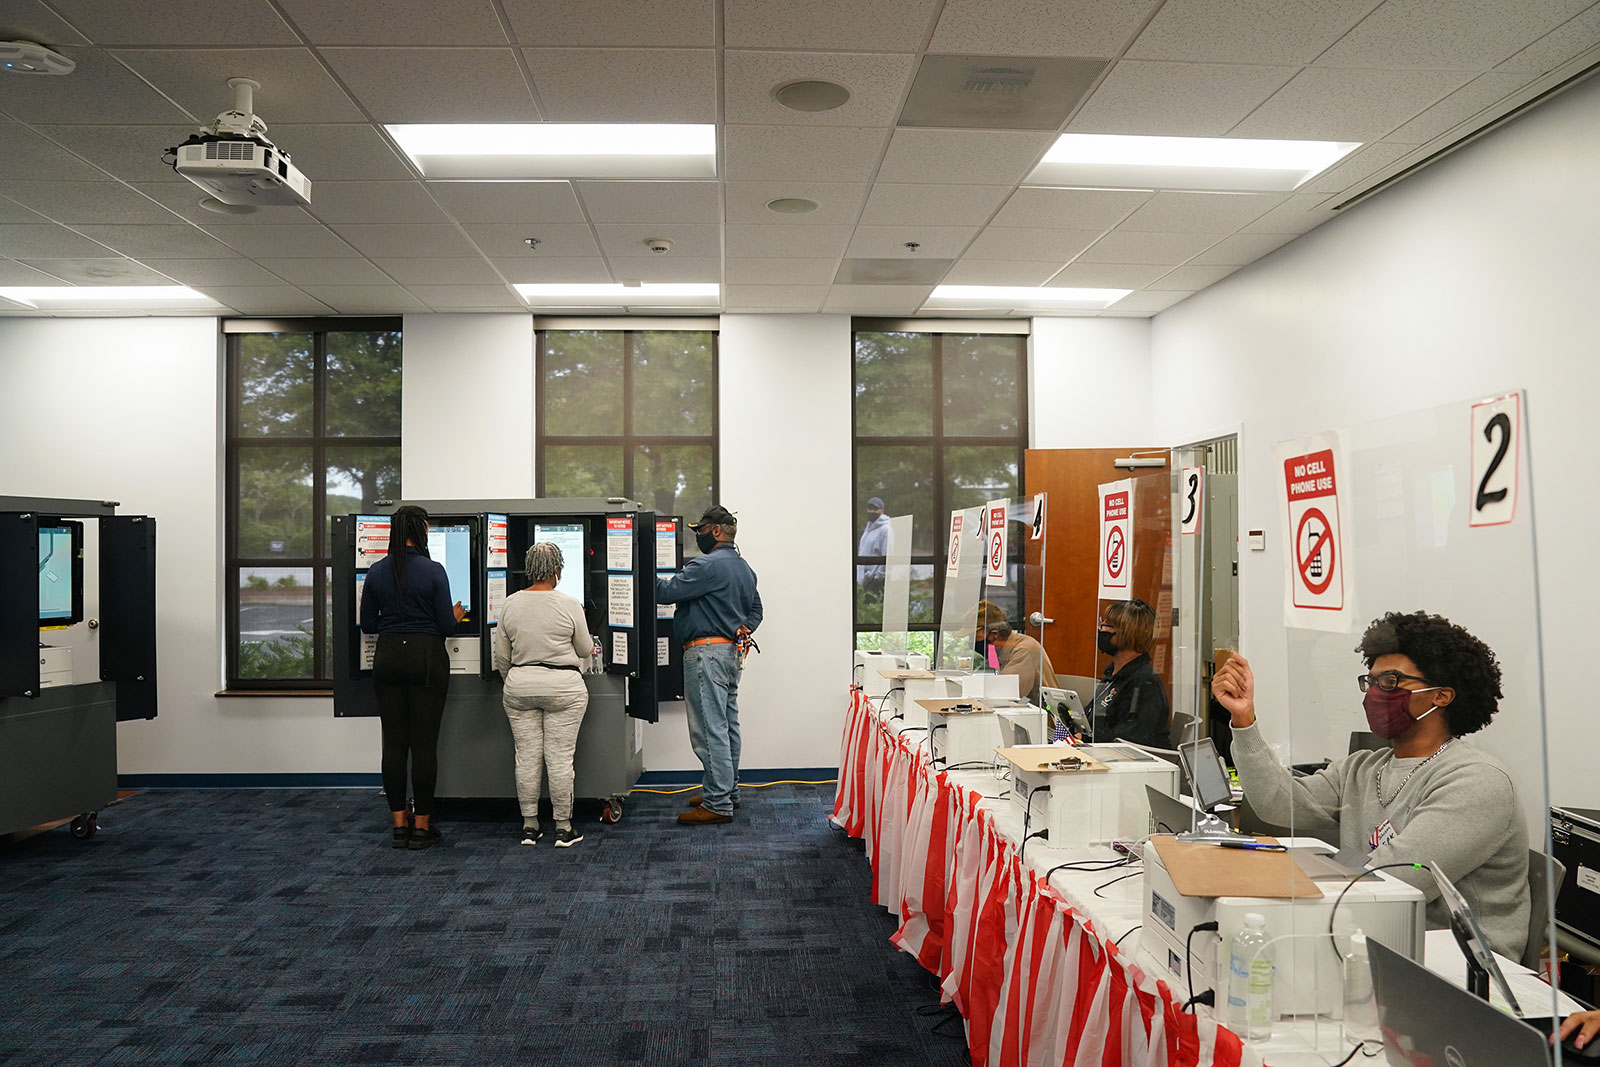 People cast their ballots during early voting in Atlanta, Georgia, on October 12.